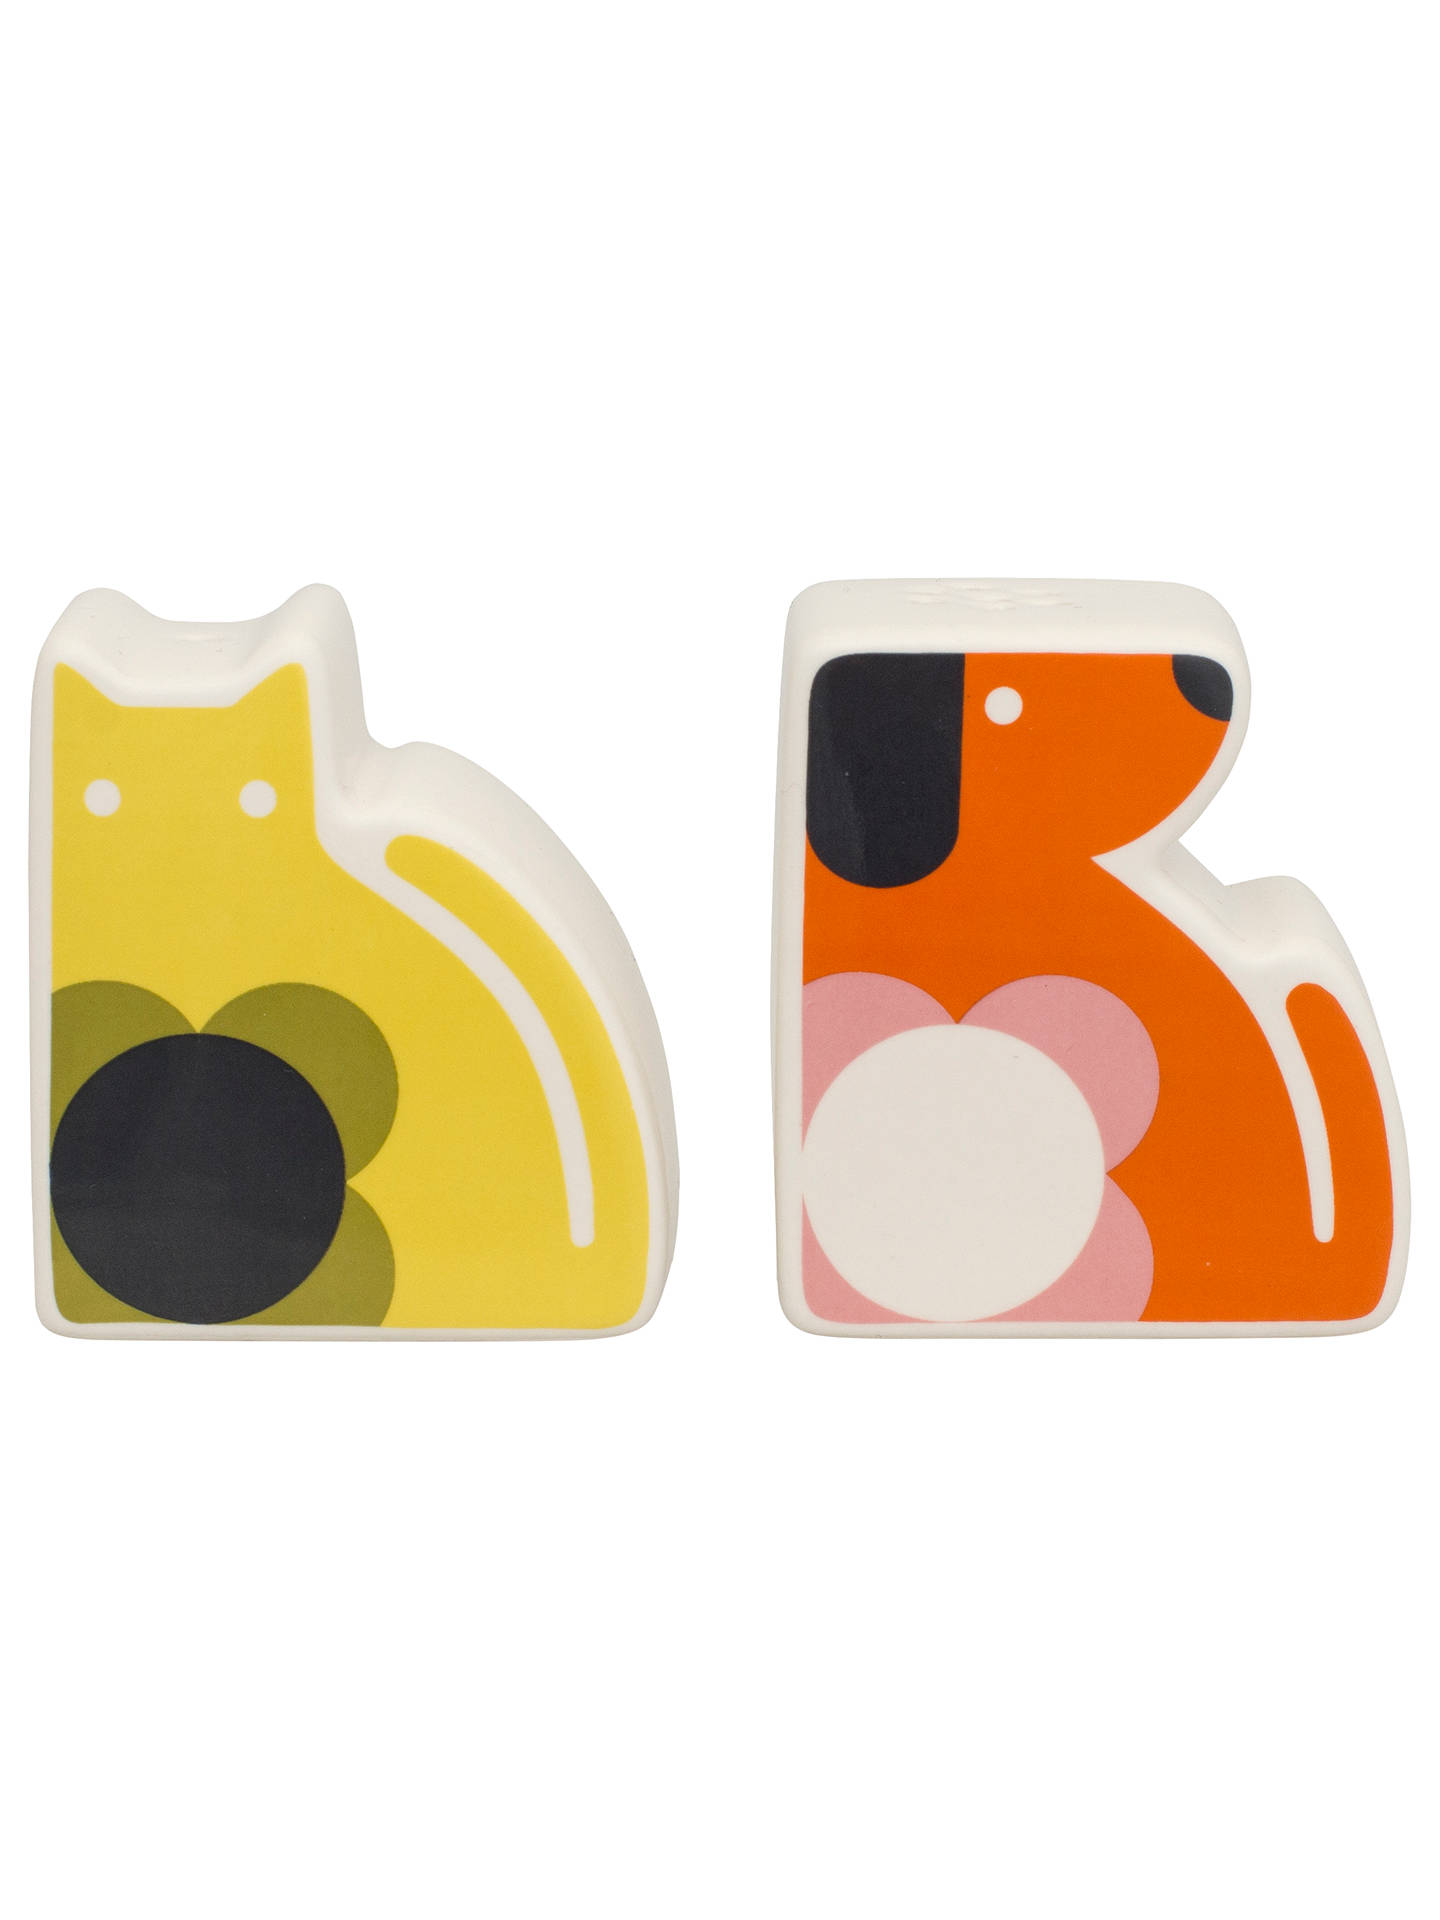 Orla Kiely Cat and Dog Salt and Pepper Set at John Lewis & Partners